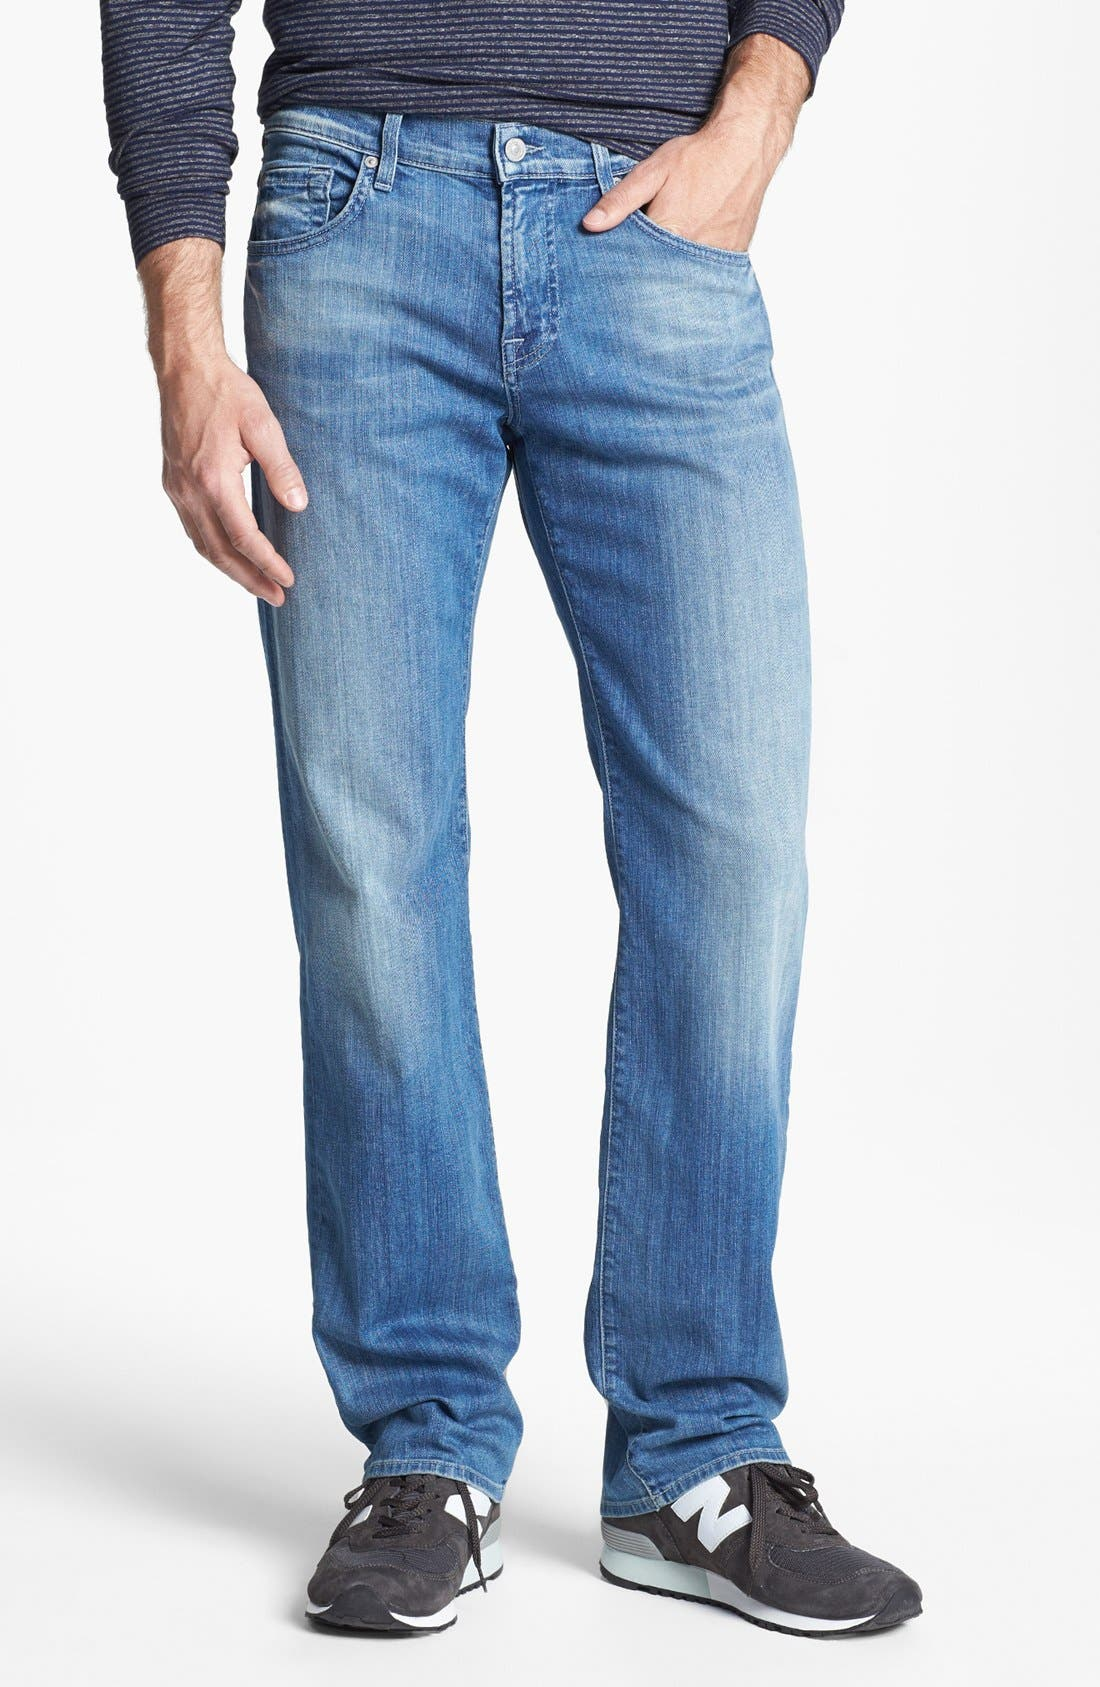 Main Image - 7 For All Mankind® 'Austyn' Relaxed Fit Jeans (Washed Out)